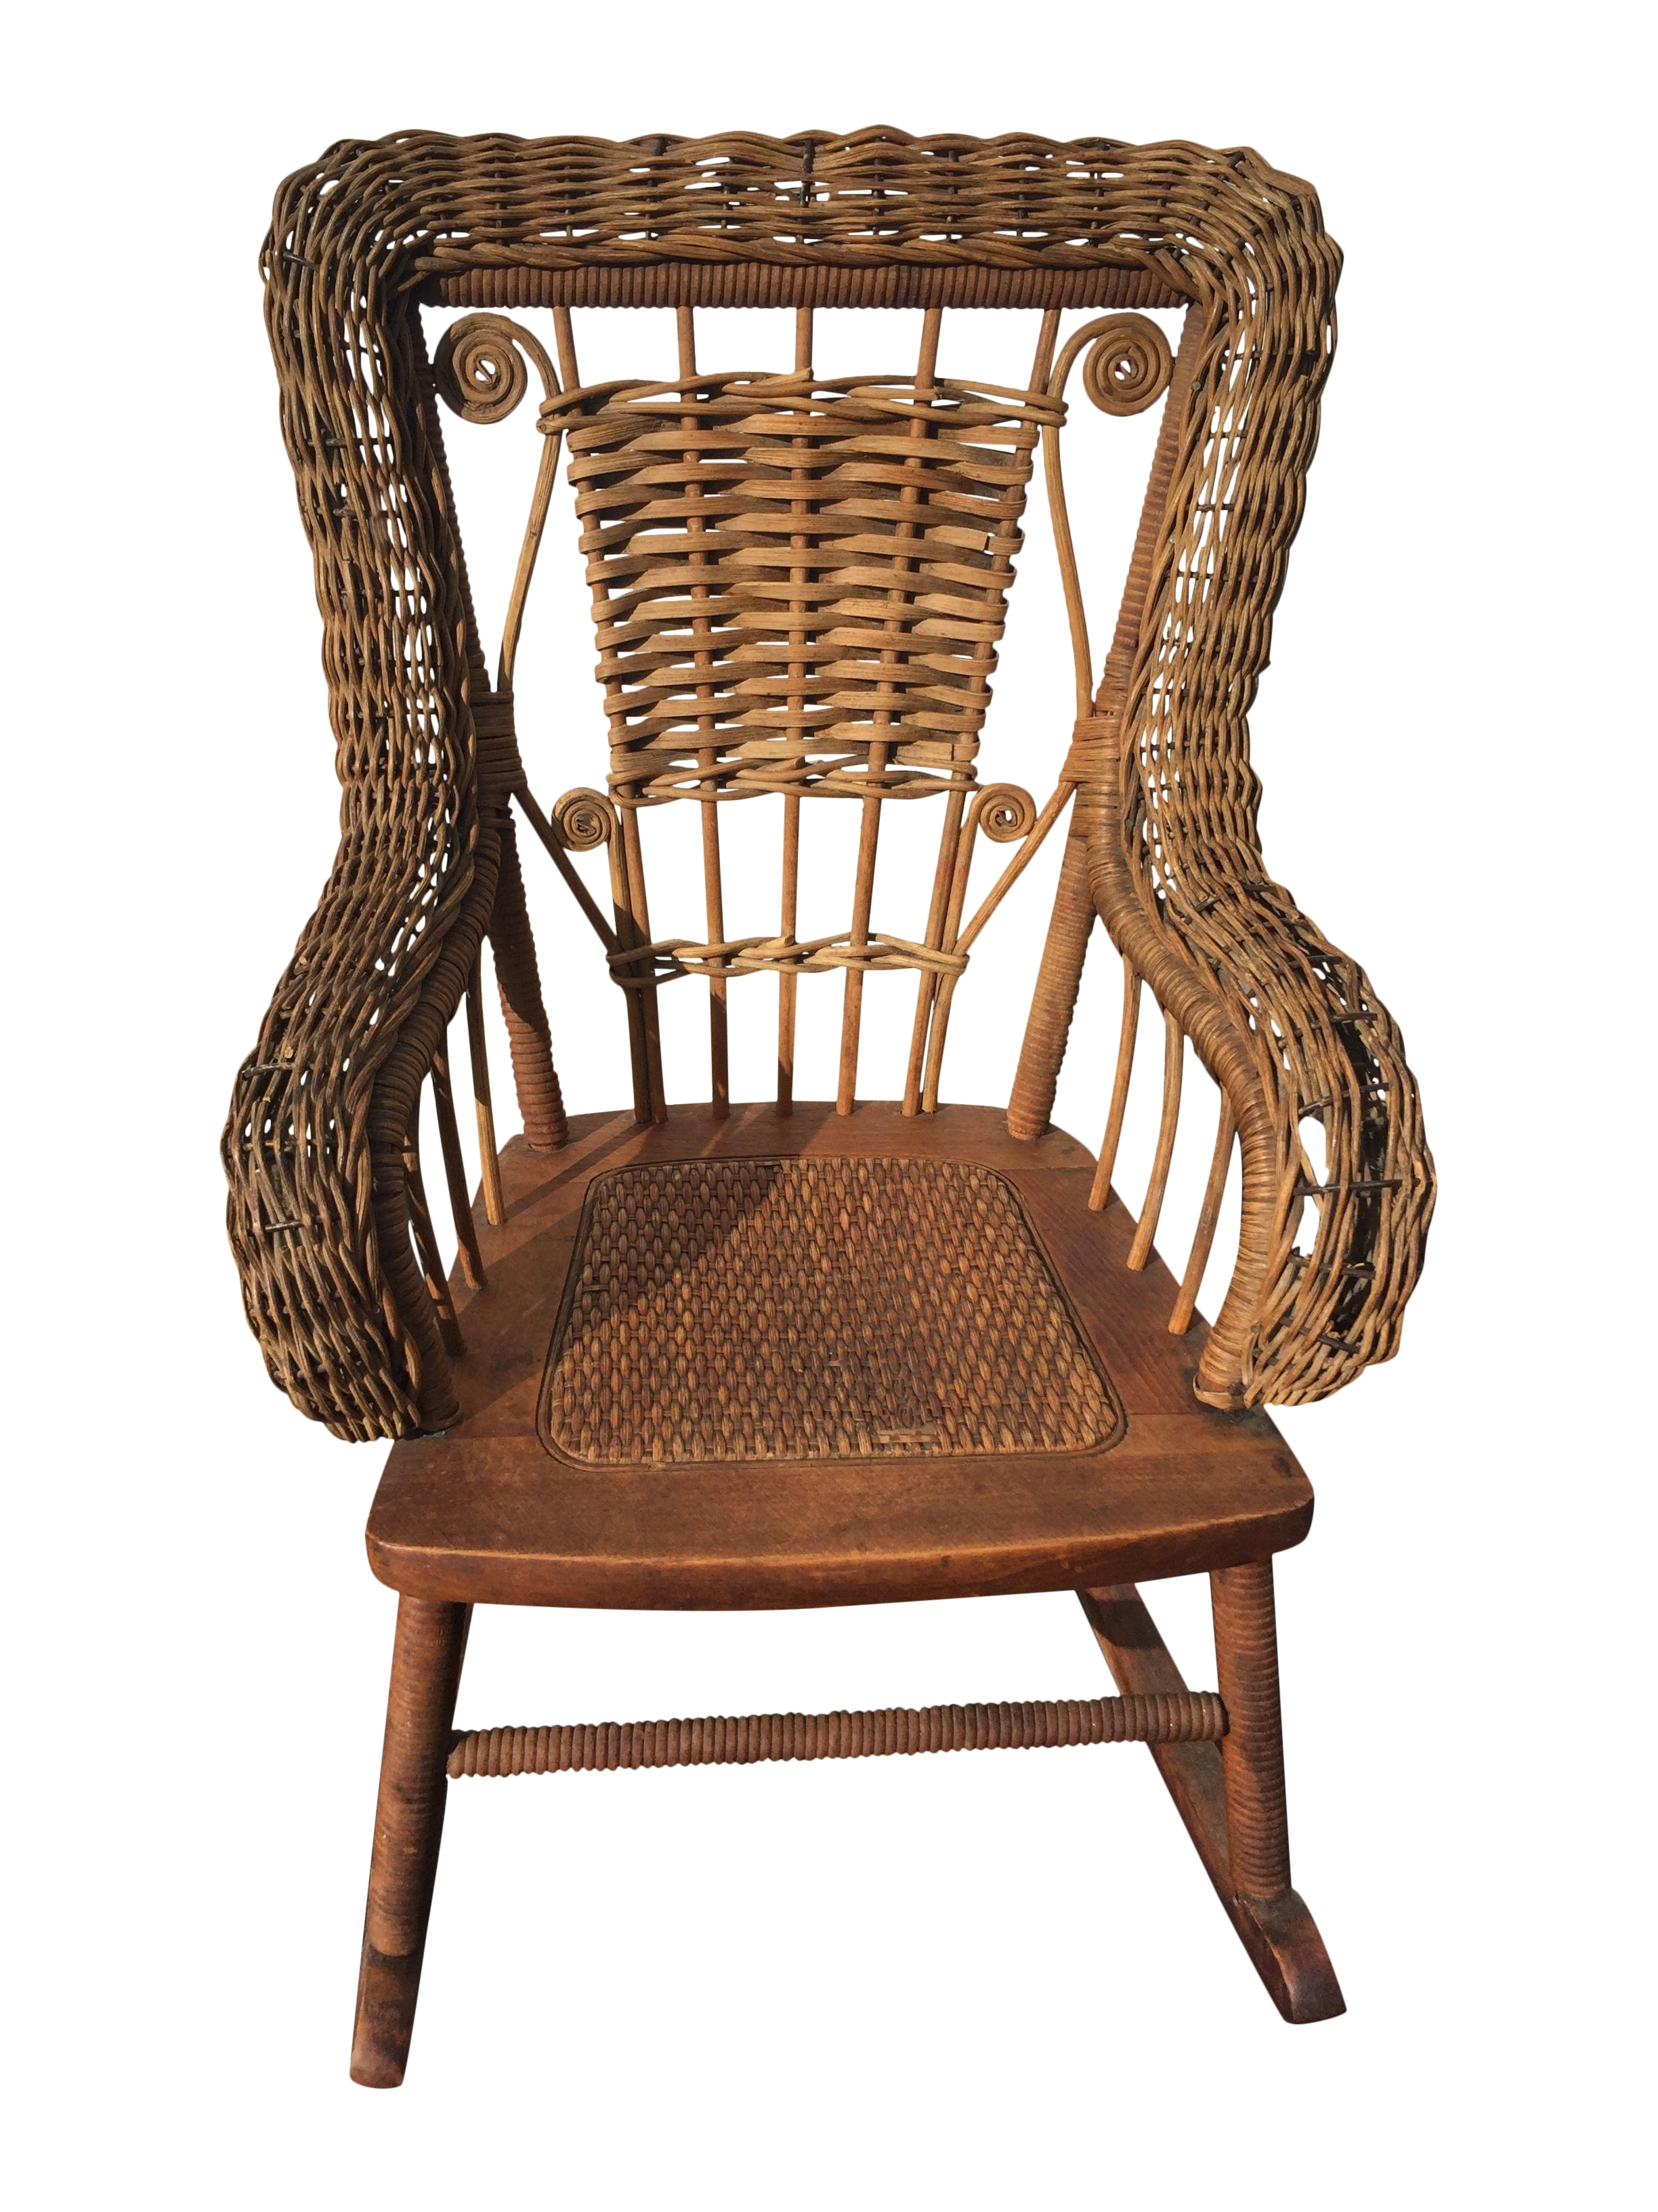 2017 Vintage Wicker Rocking Chairs Intended For Antique Childrens Wicker Spindle Rocking Chair Chairish Childs Uk (View 12 of 15)